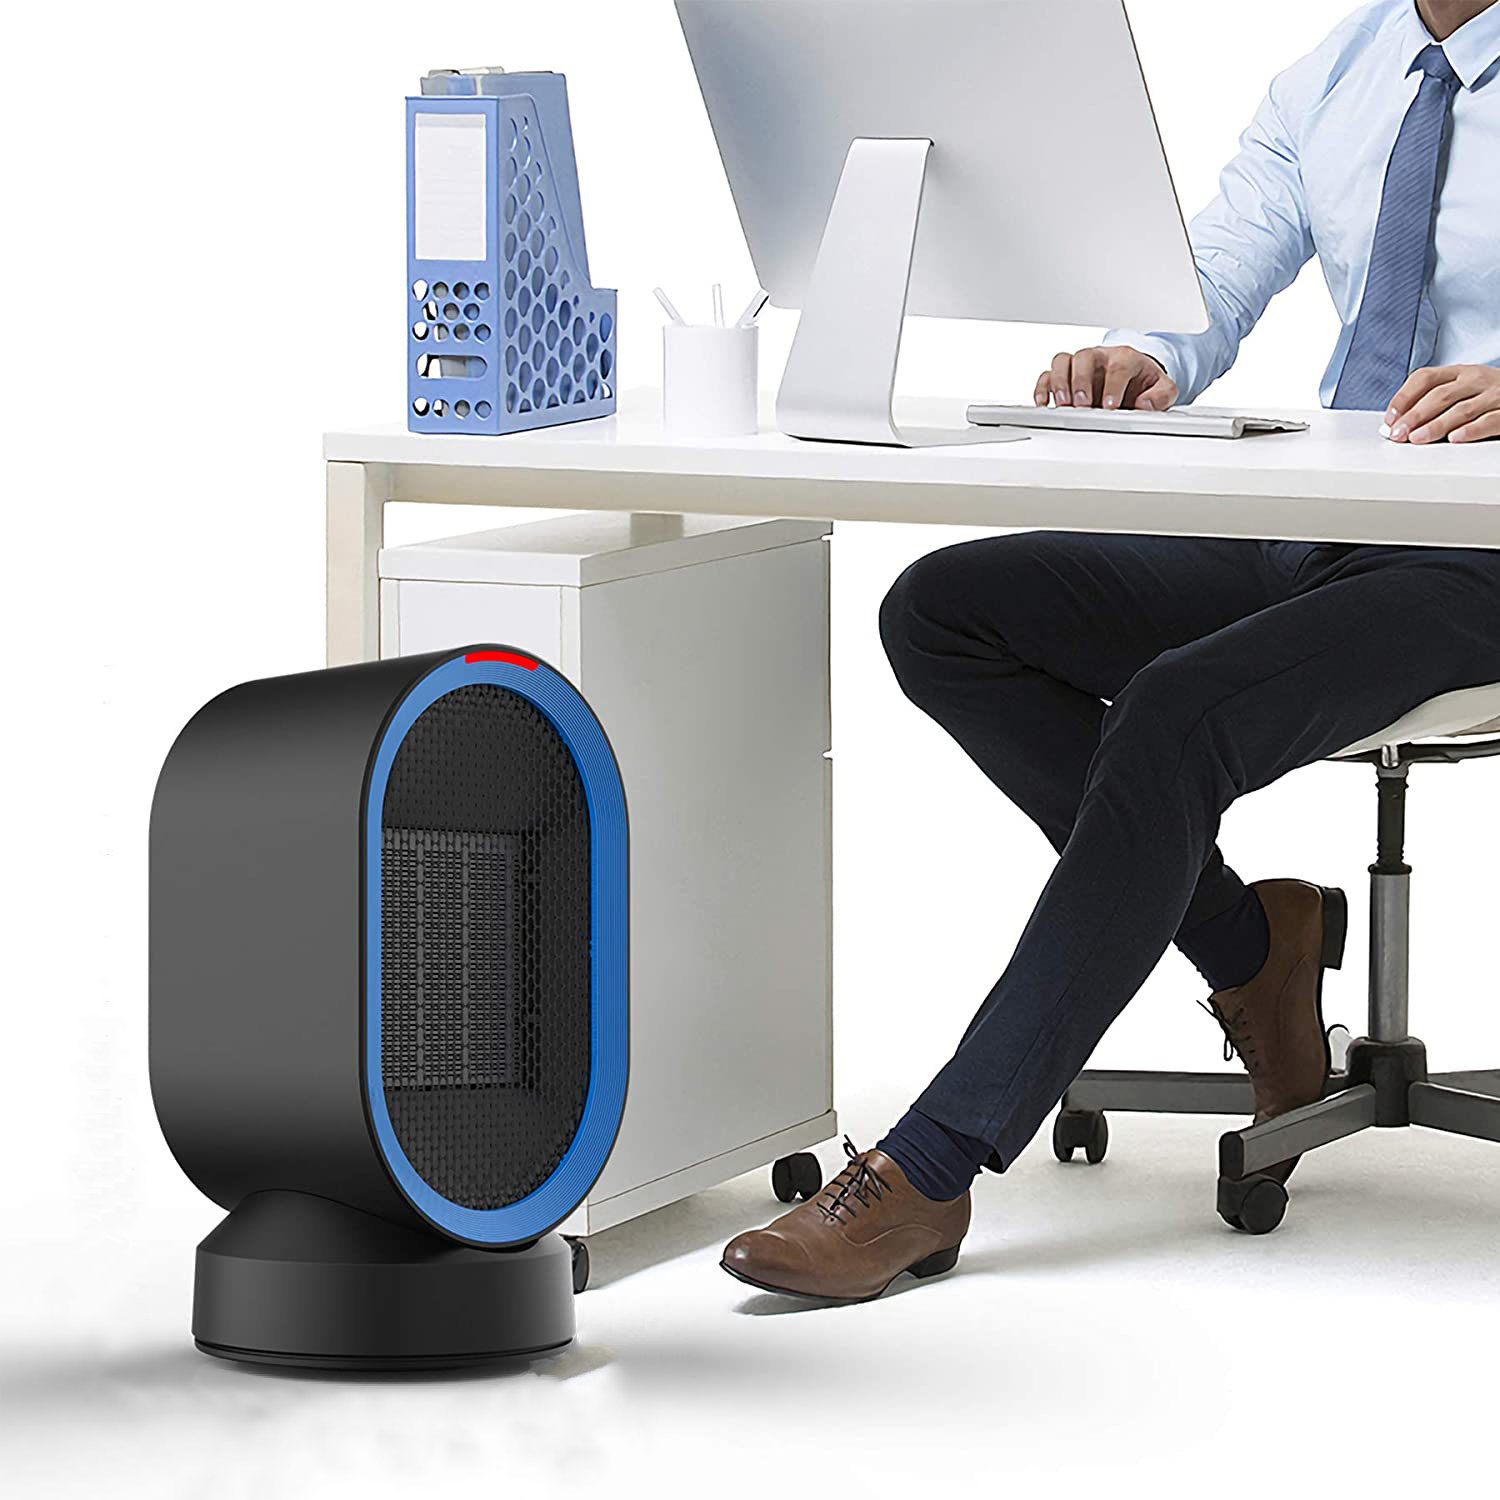 A person sitting at a desk with a small space heater at their feet